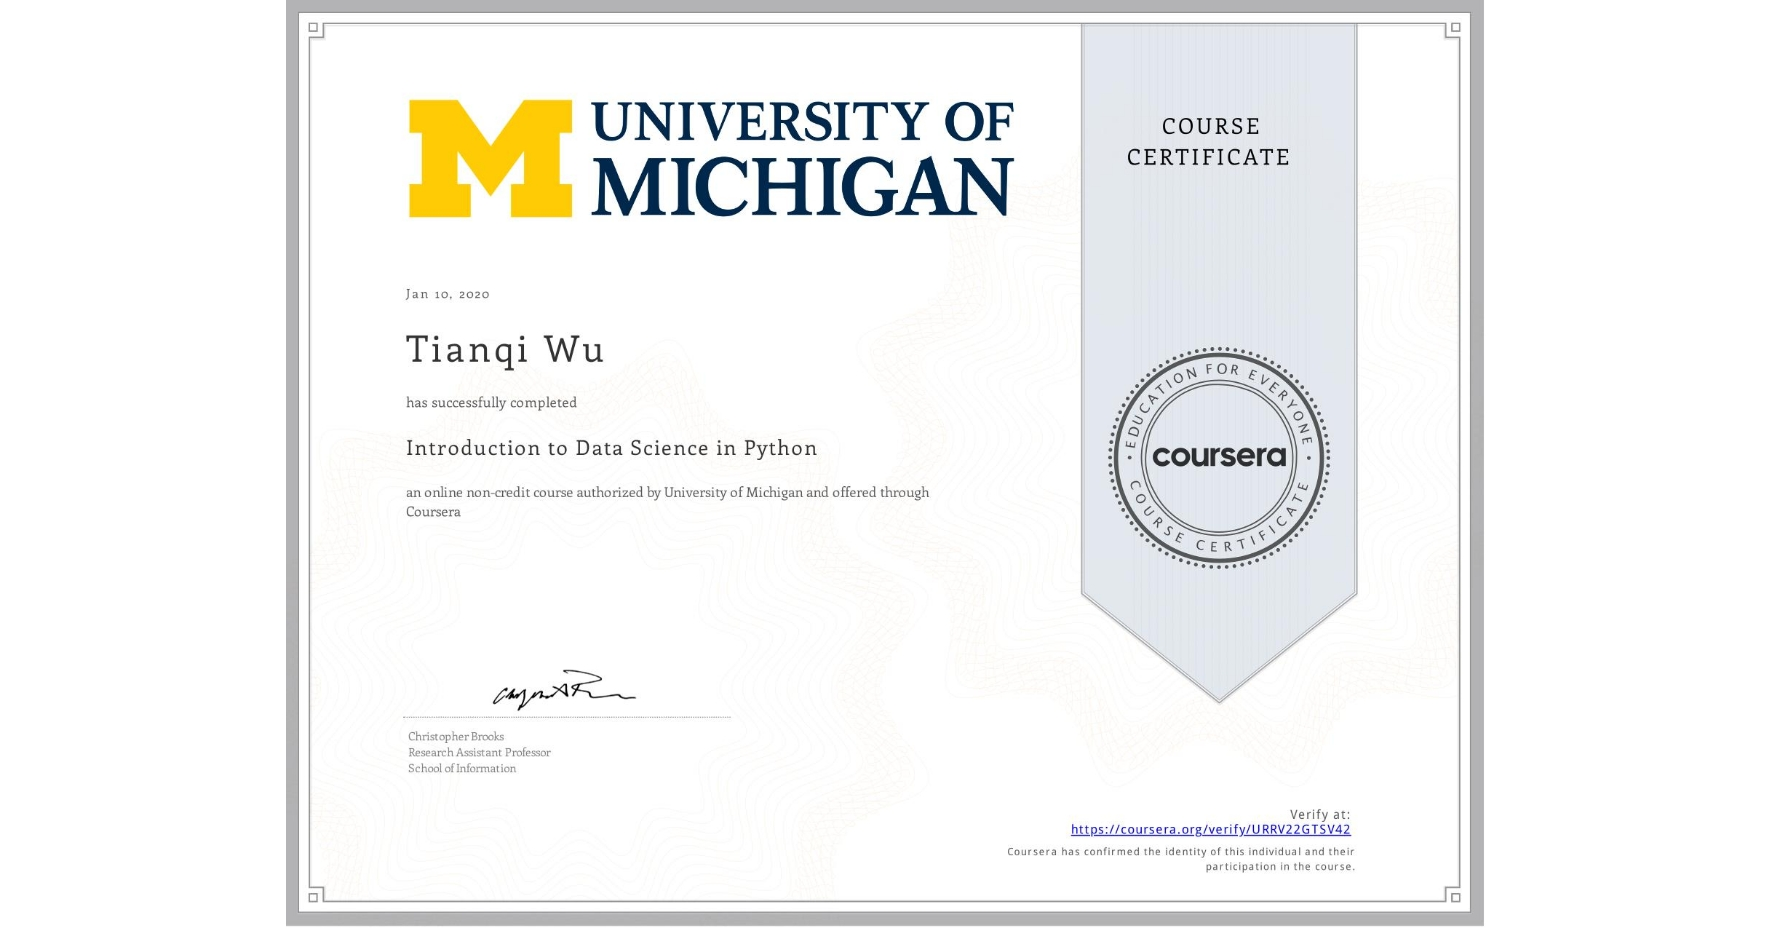 View certificate for Tianqi Wu, Introduction to Data Science in Python, an online non-credit course authorized by University of Michigan and offered through Coursera